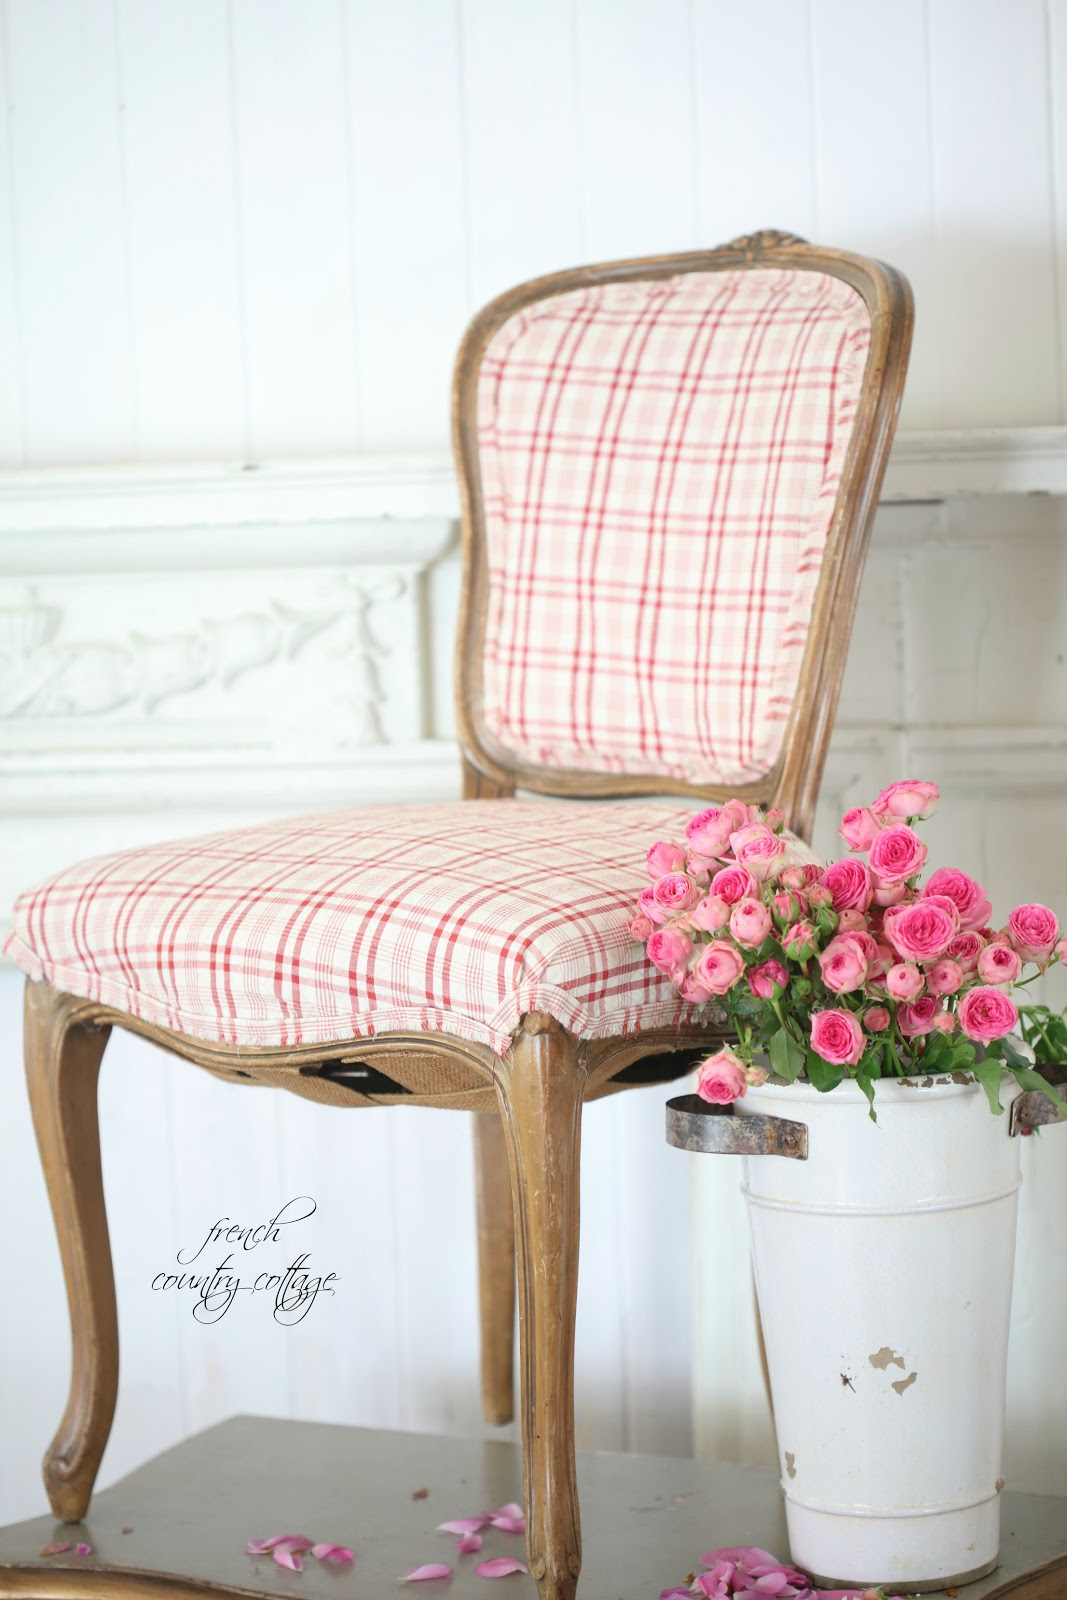 Thrifty under $50 French chair FRENCH COUNTRY COTTAGE